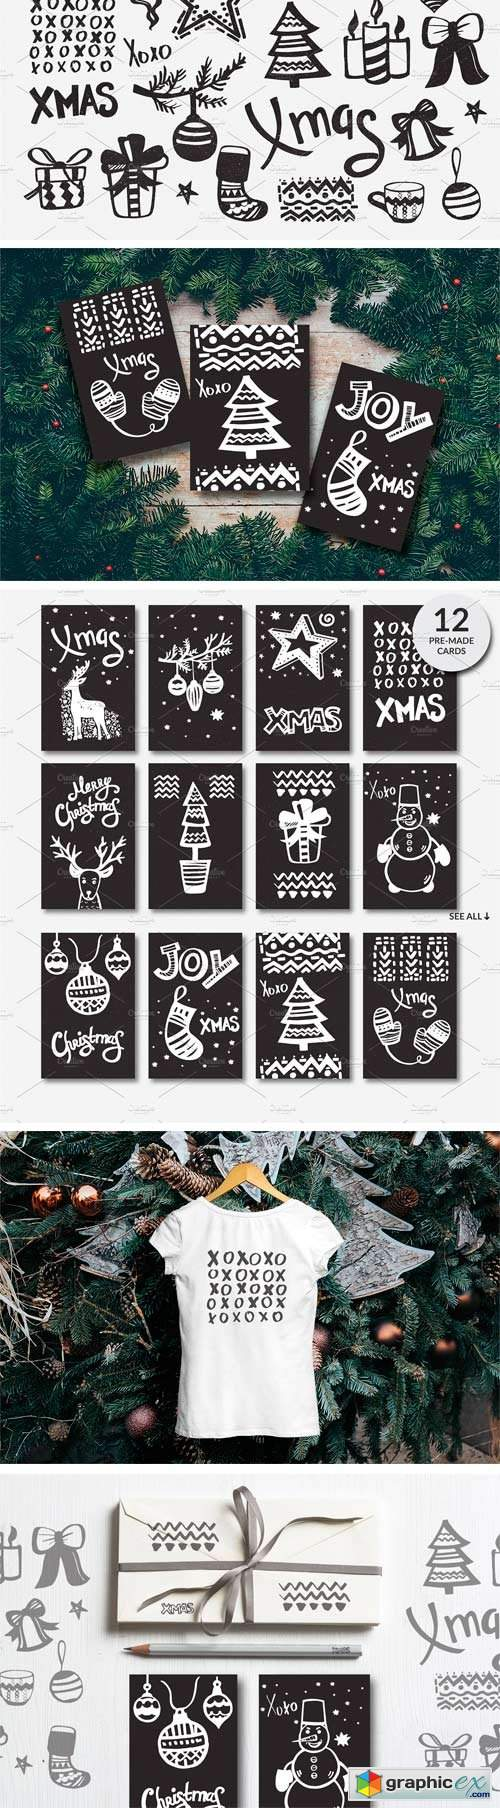 Handdraw Christmas Elements